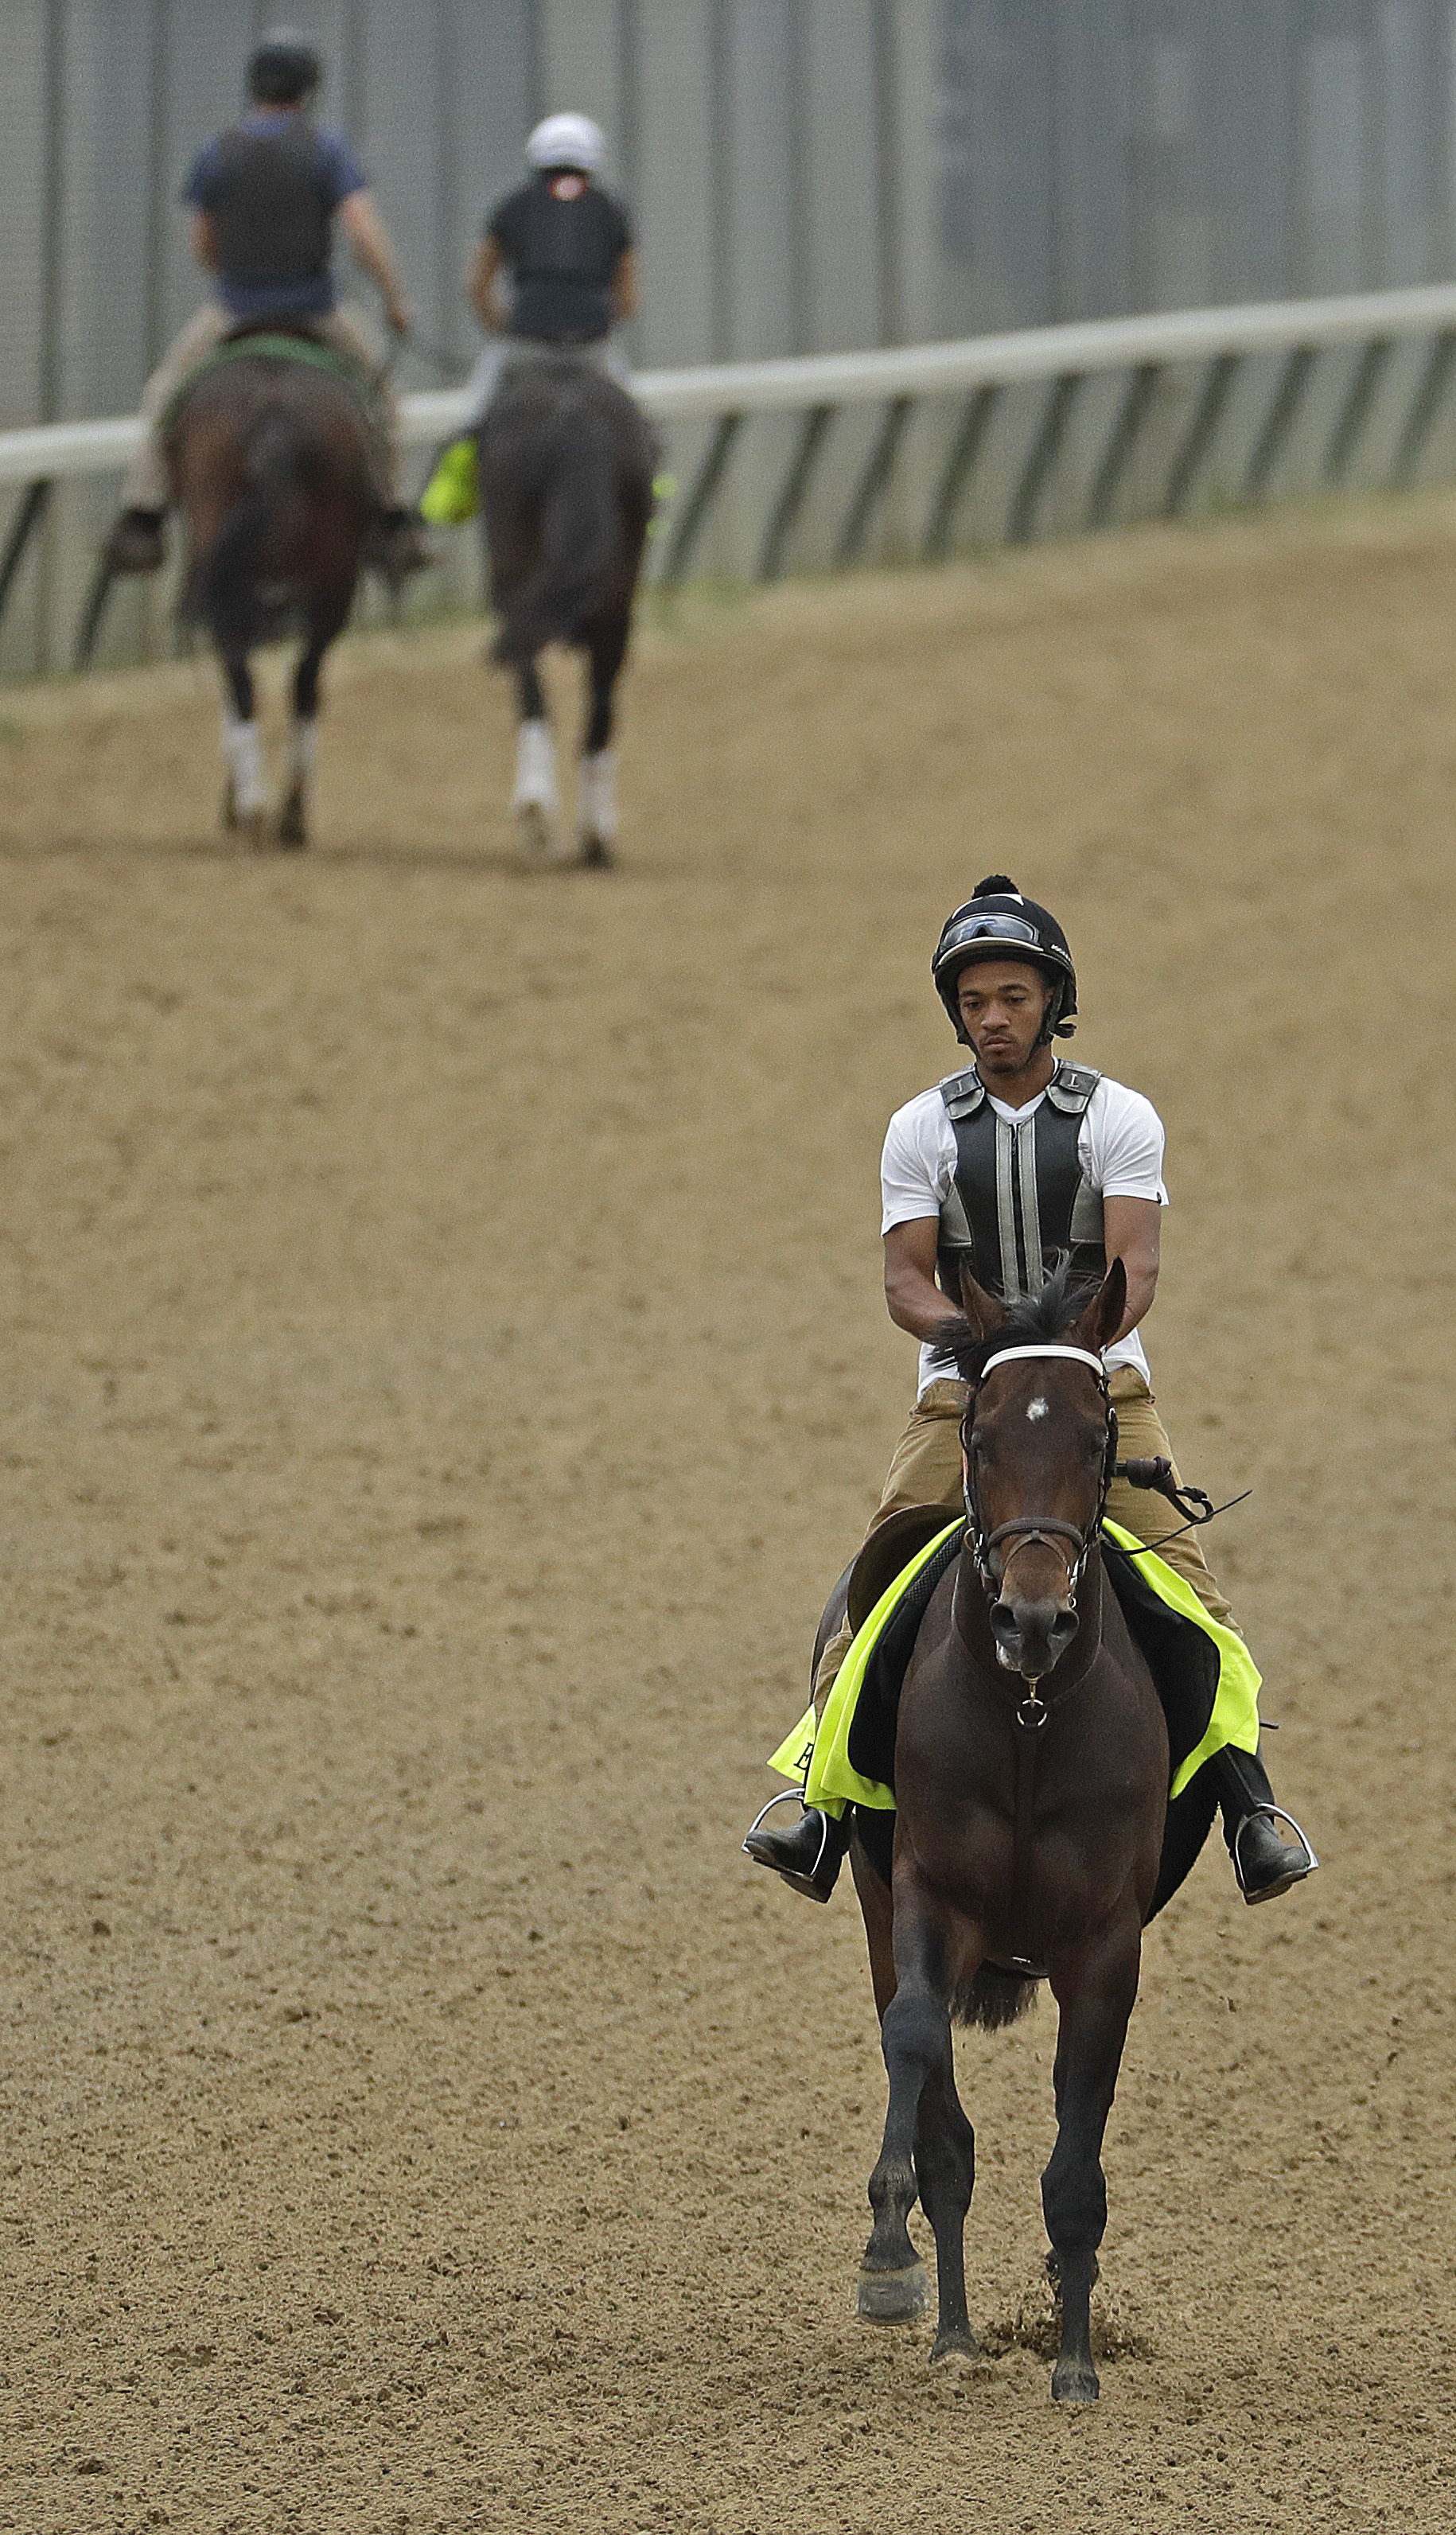 Exercise rider Peedy Landry rides Kentucky Derby hopeful Exaggerator during a workout at Churchill Downs Tuesday, May 3, 2016, in Louisville, Ky. The 142nd running of the Kentucky Derby is scheduled for Saturday, May 7. (AP Photo/Charlie Riedel)